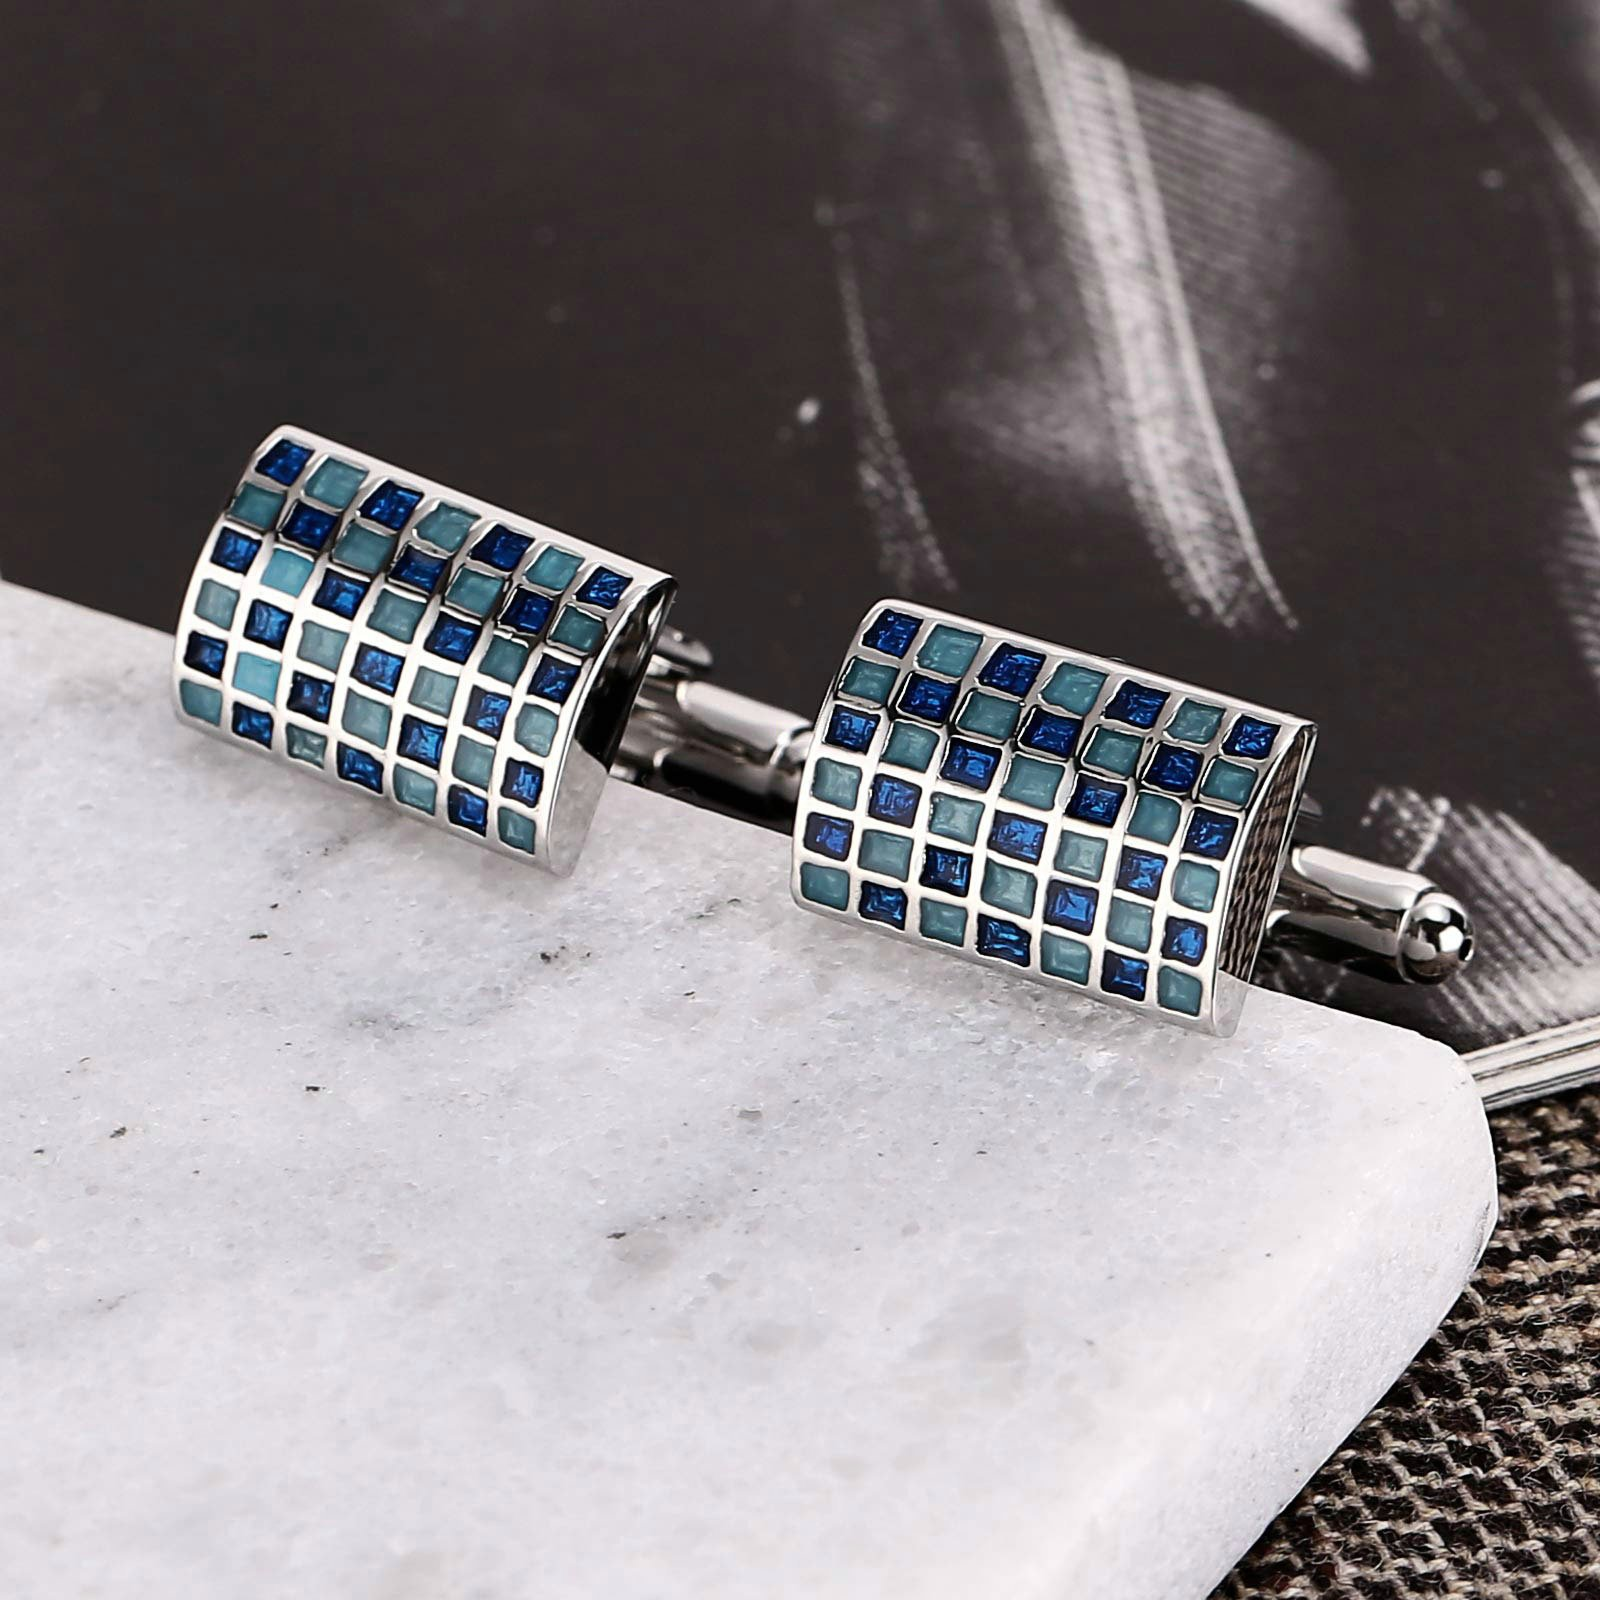 Gnzoe Stainless Steel Men's Shirt Cuff Links Business Wedding Grid 2-Color Construction Blue by Gnzoe (Image #3)